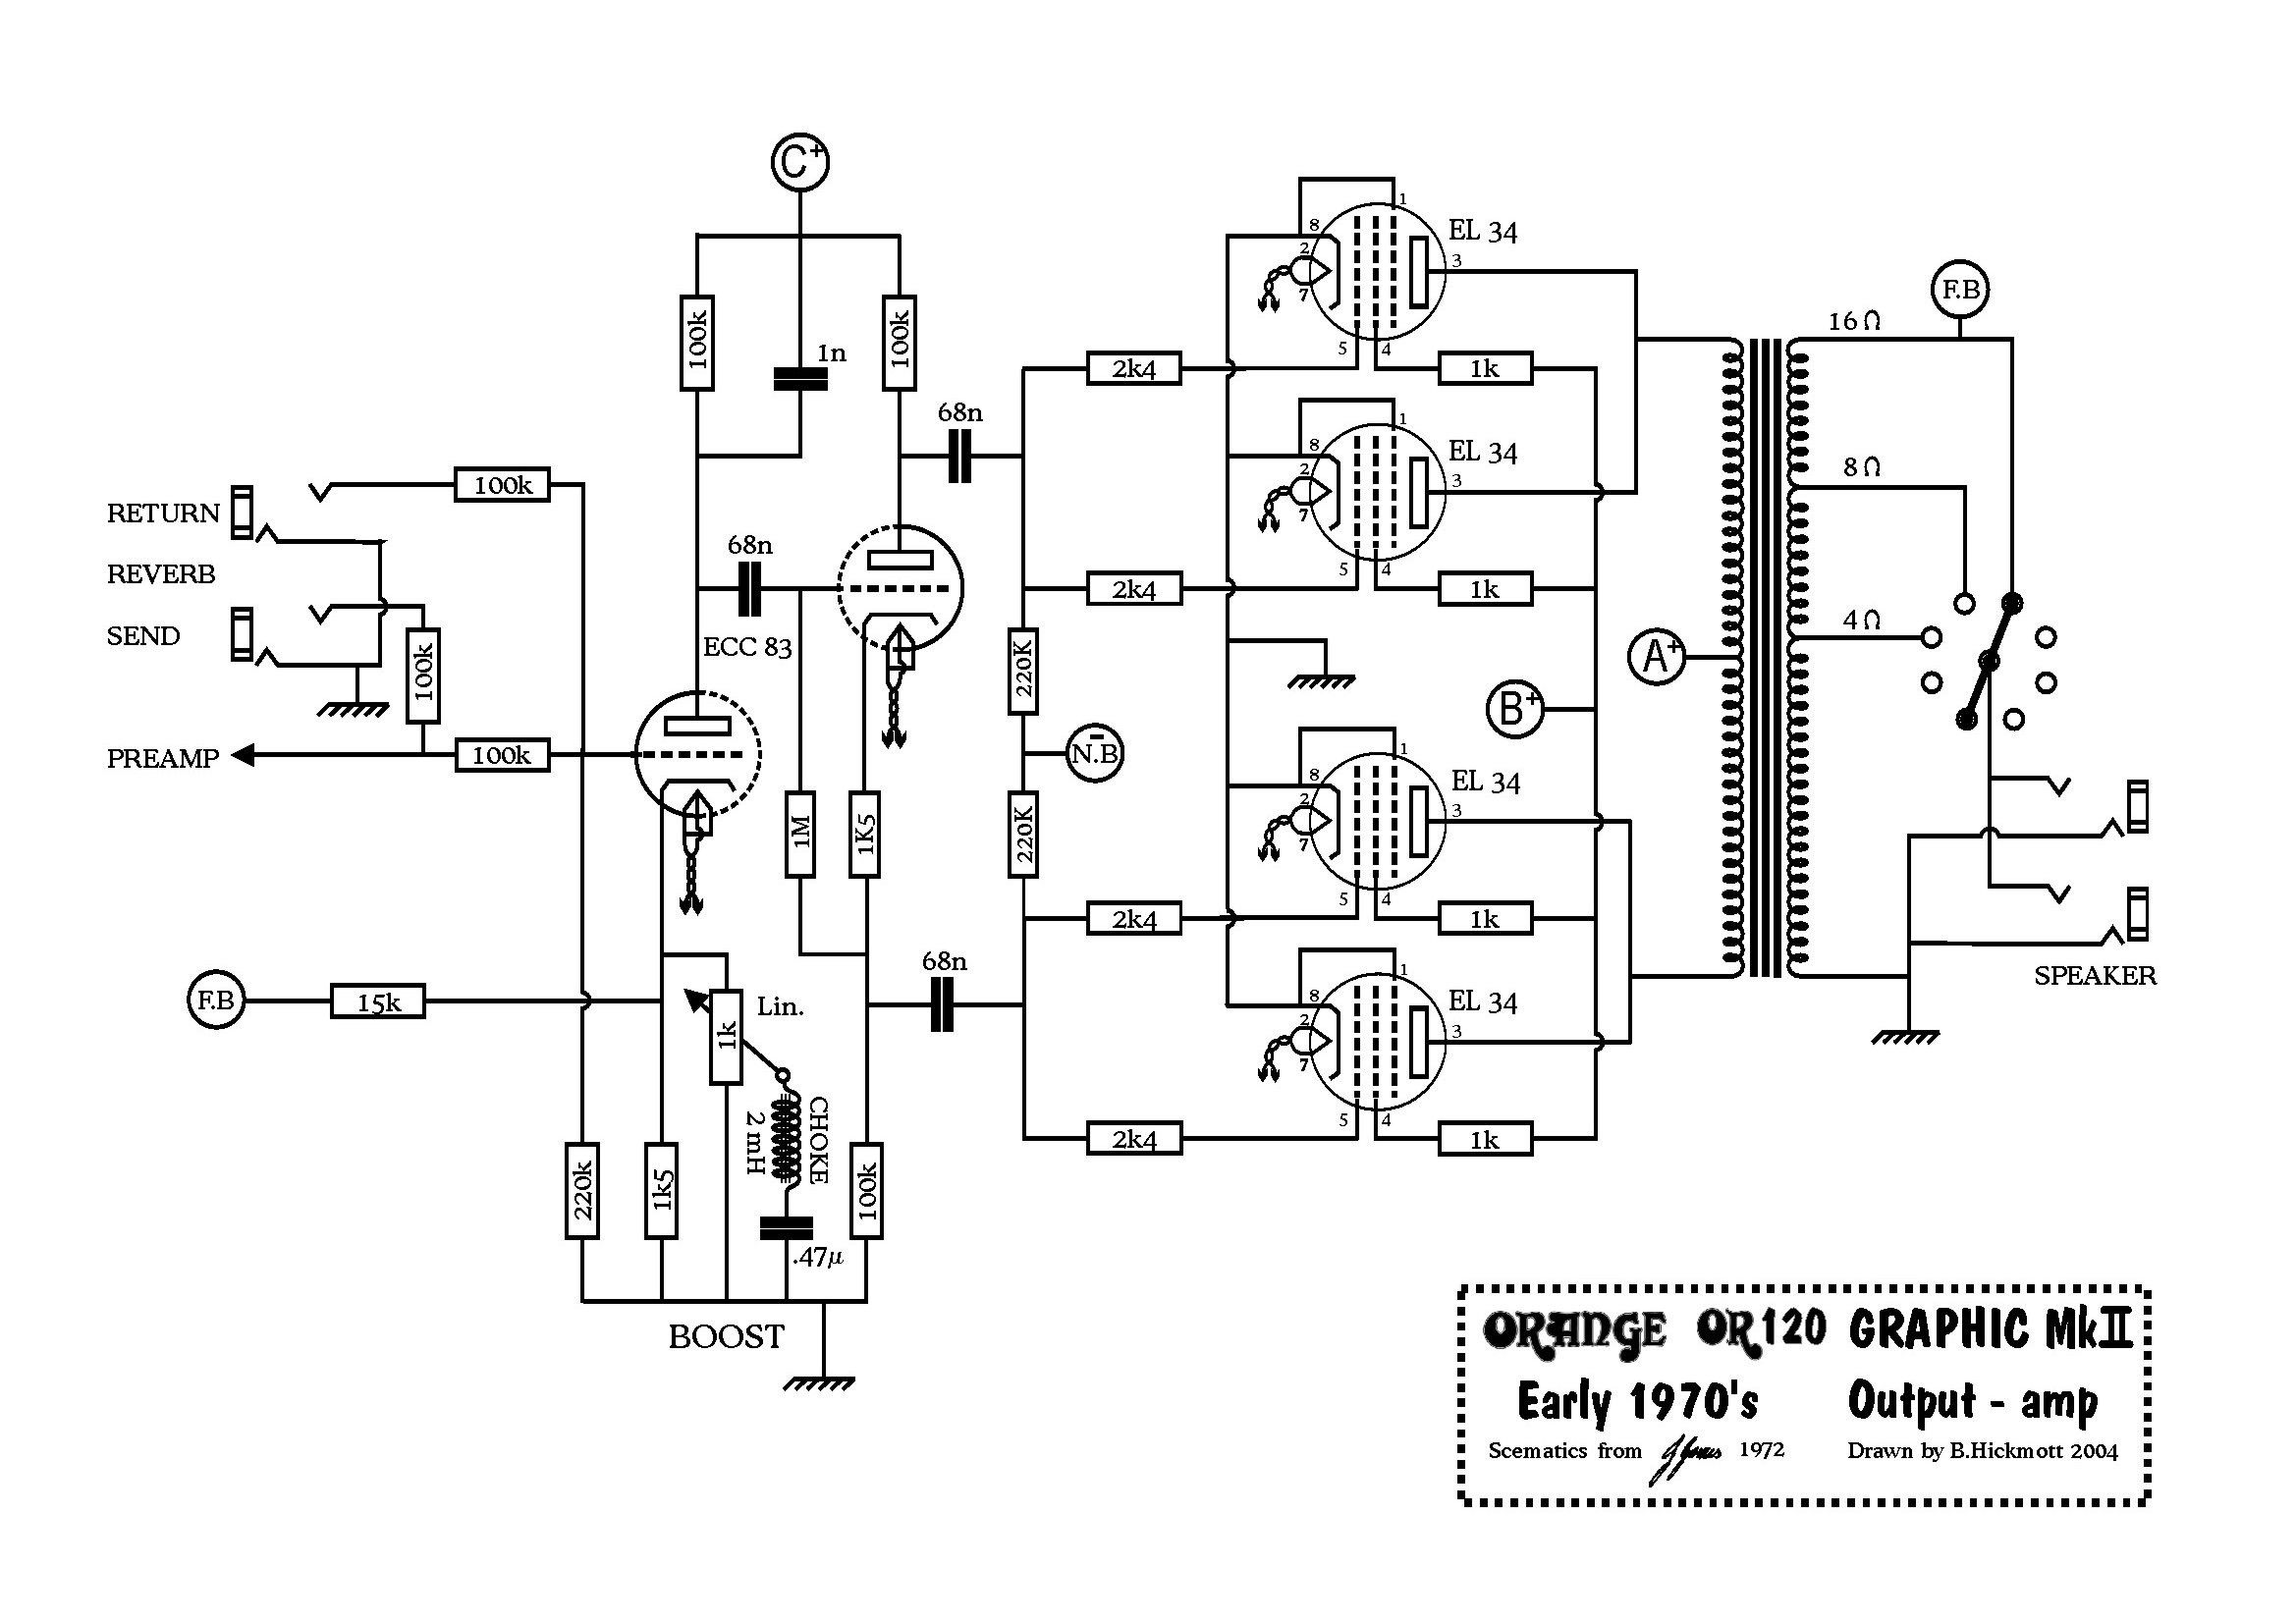 small resolution of guitar amplifier circuit diagram with pcb layout new the orange amp mods page